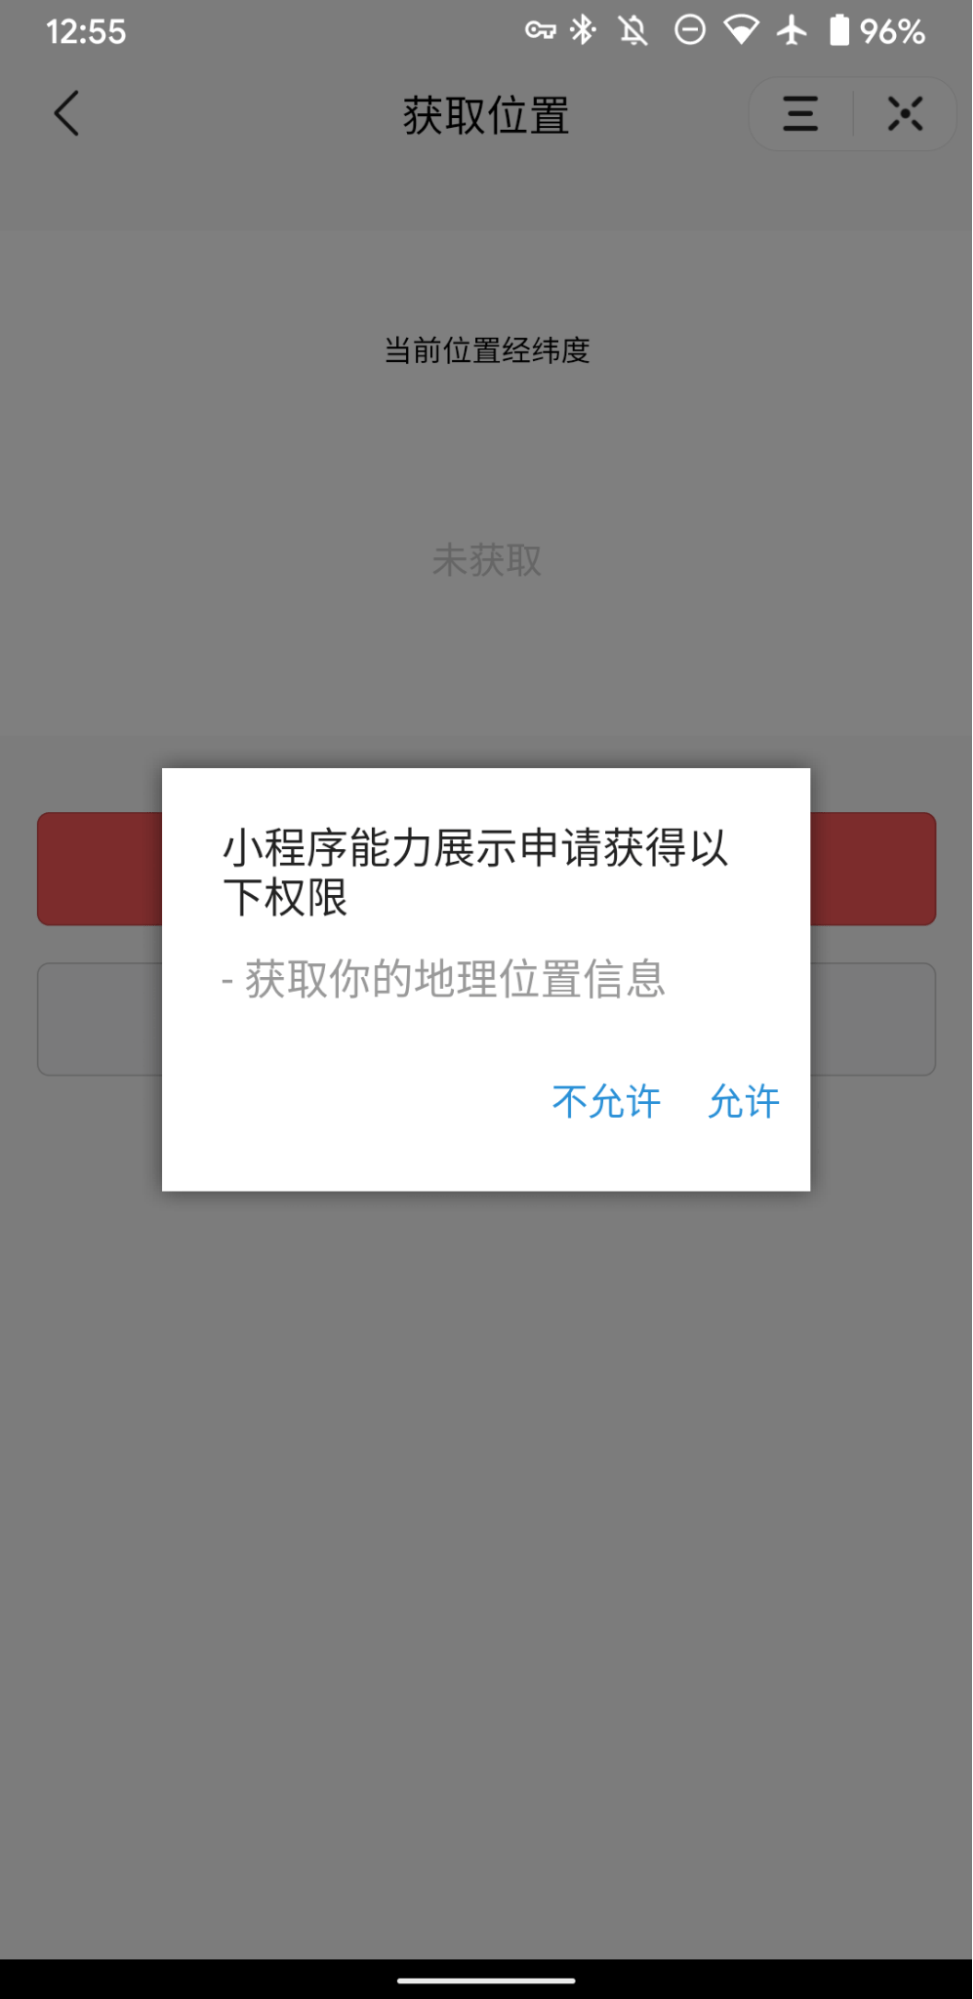 The Douyin demo mini app showing a geolocation prompt with two options: 'Not Allowed' and 'Allowed'.